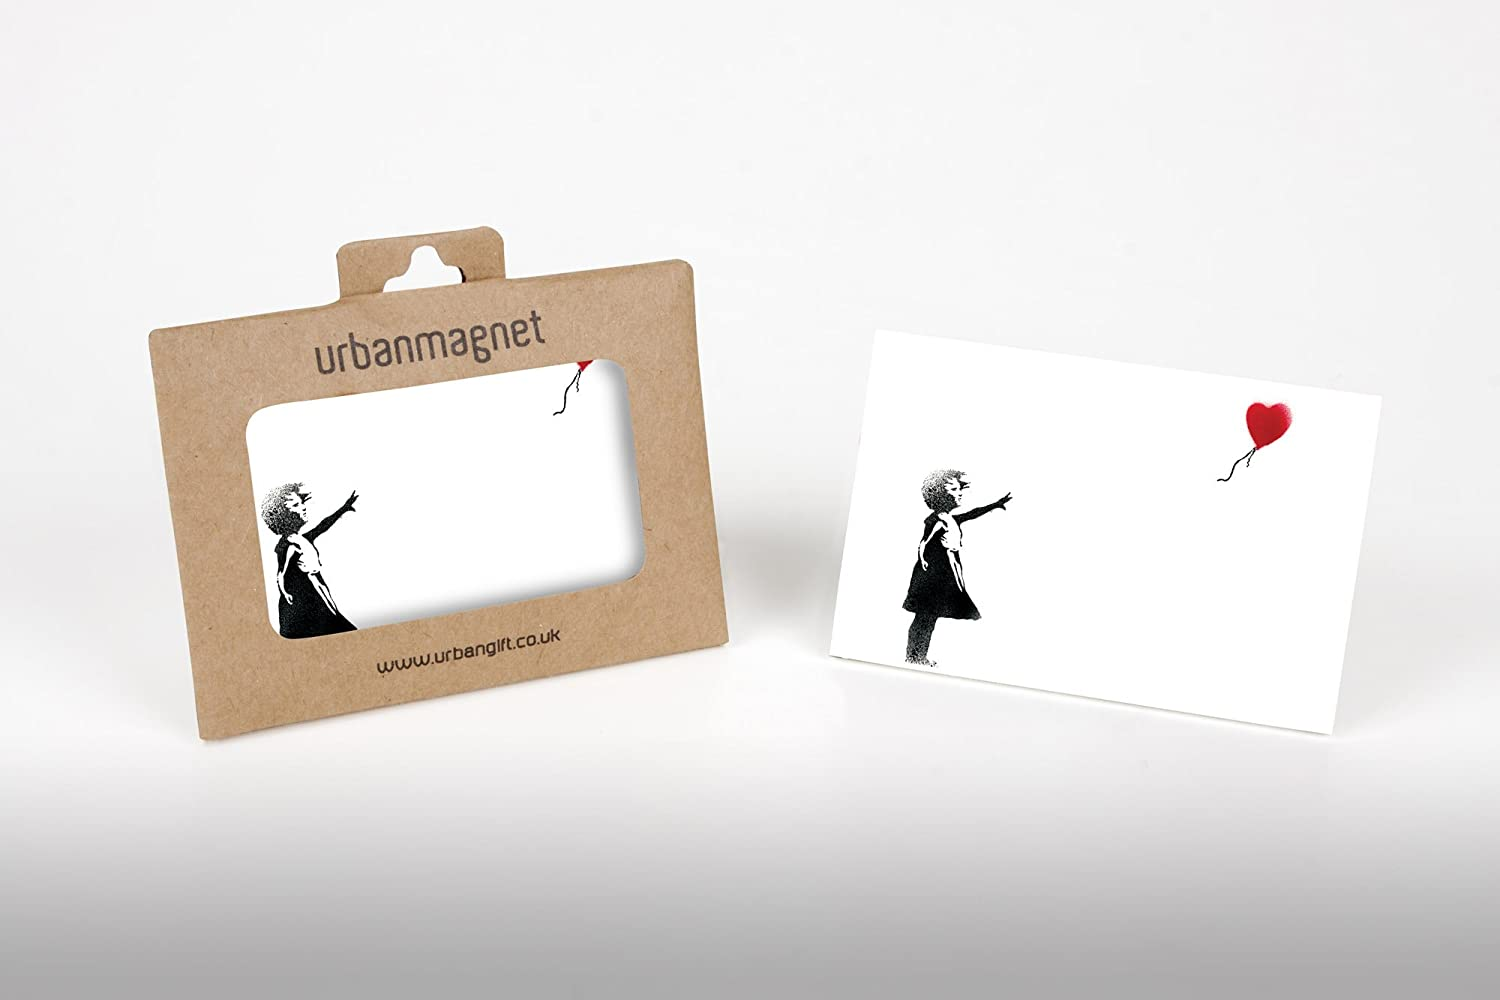 Banksy Balloon Girl Photo Fridge Magnet White 6x9cm Urbangift